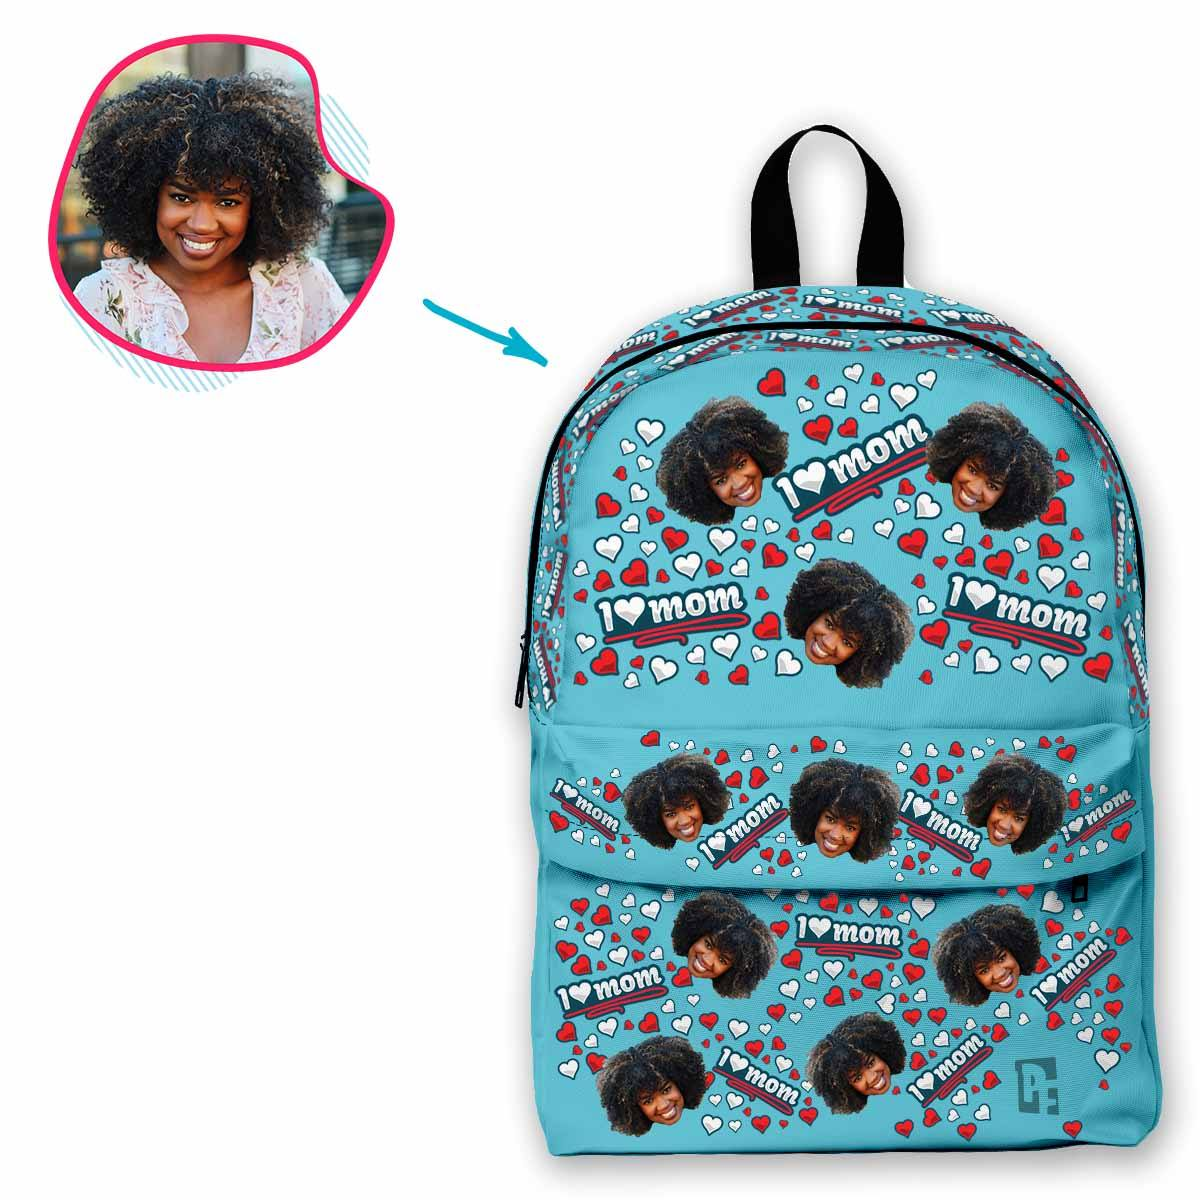 blue Love Mom classic backpack personalized with photo of face printed on it